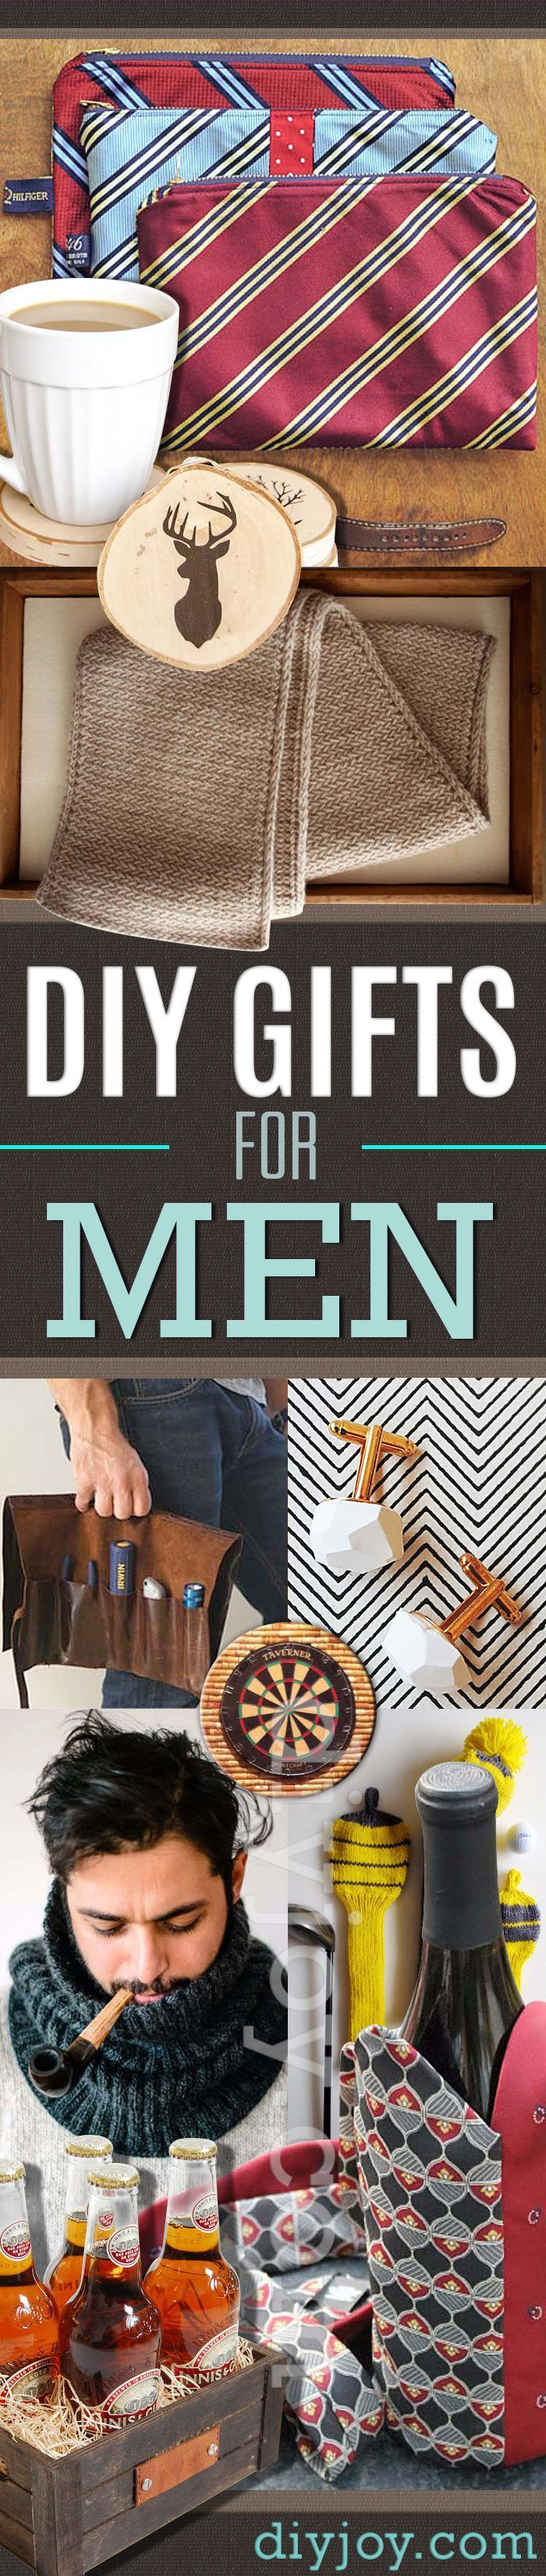 mens craft ideas 324 best images about cool diy ideas on crafts 2407